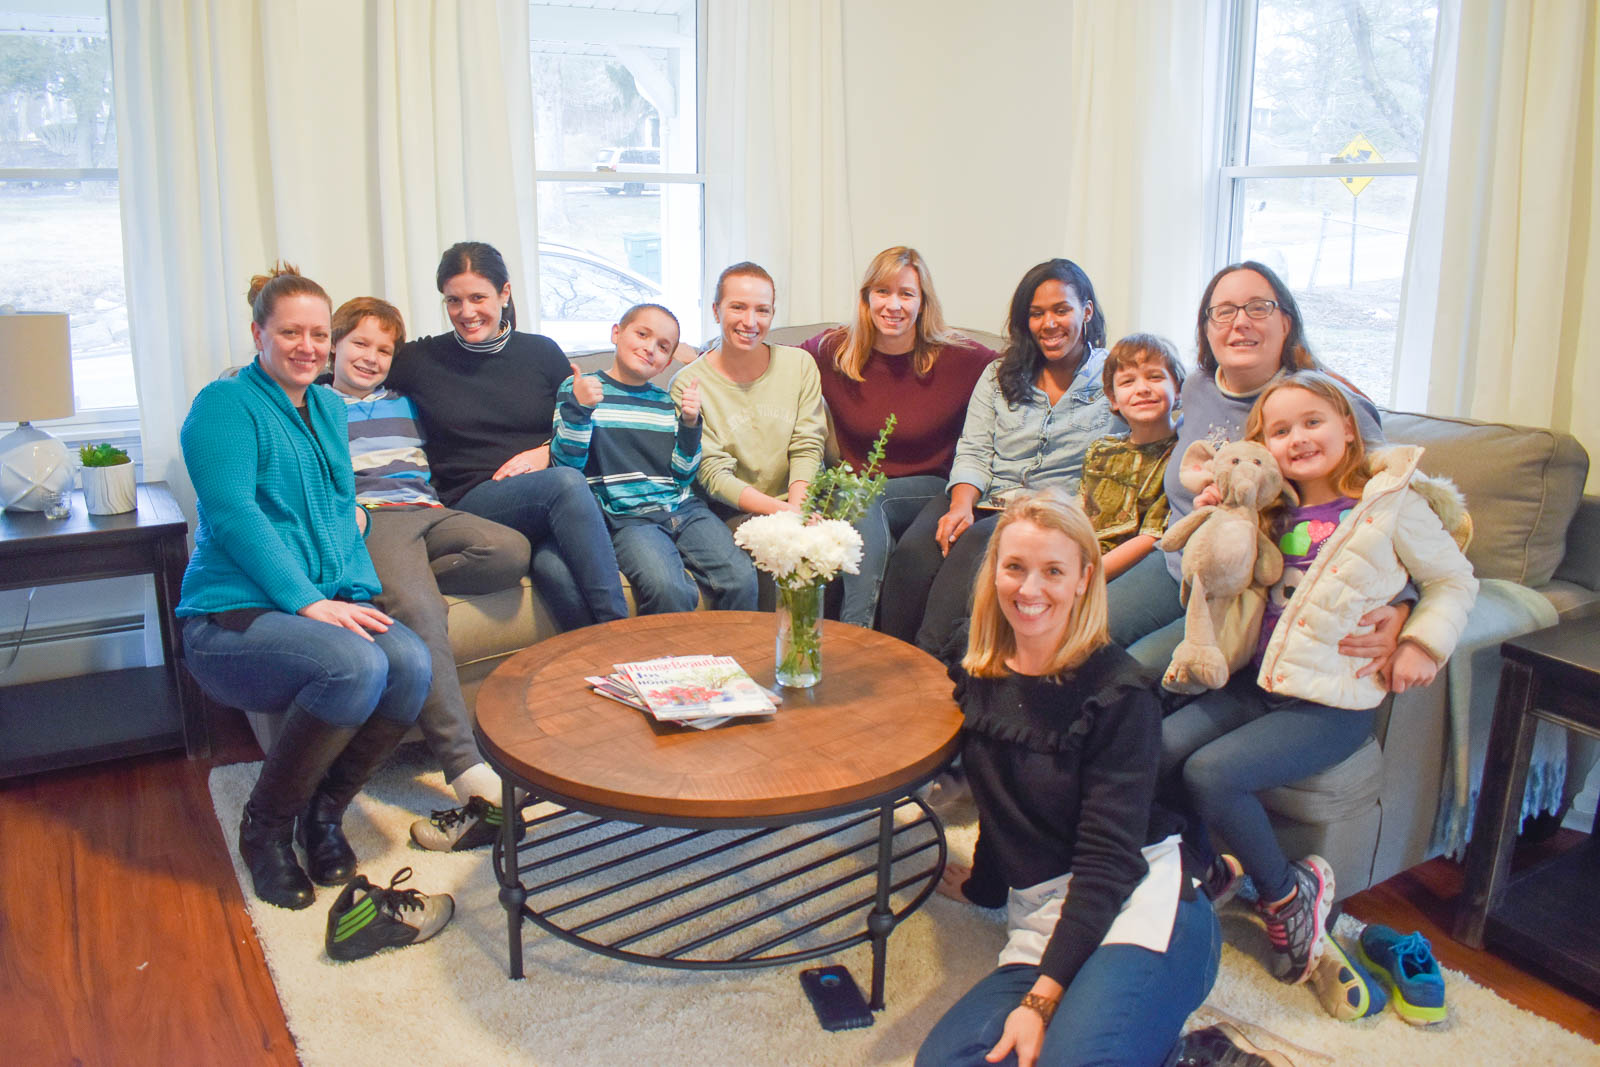 The whole BHH crew, along with the Family enjoying their new home!  Image Courtesy of  Charlotte Smith